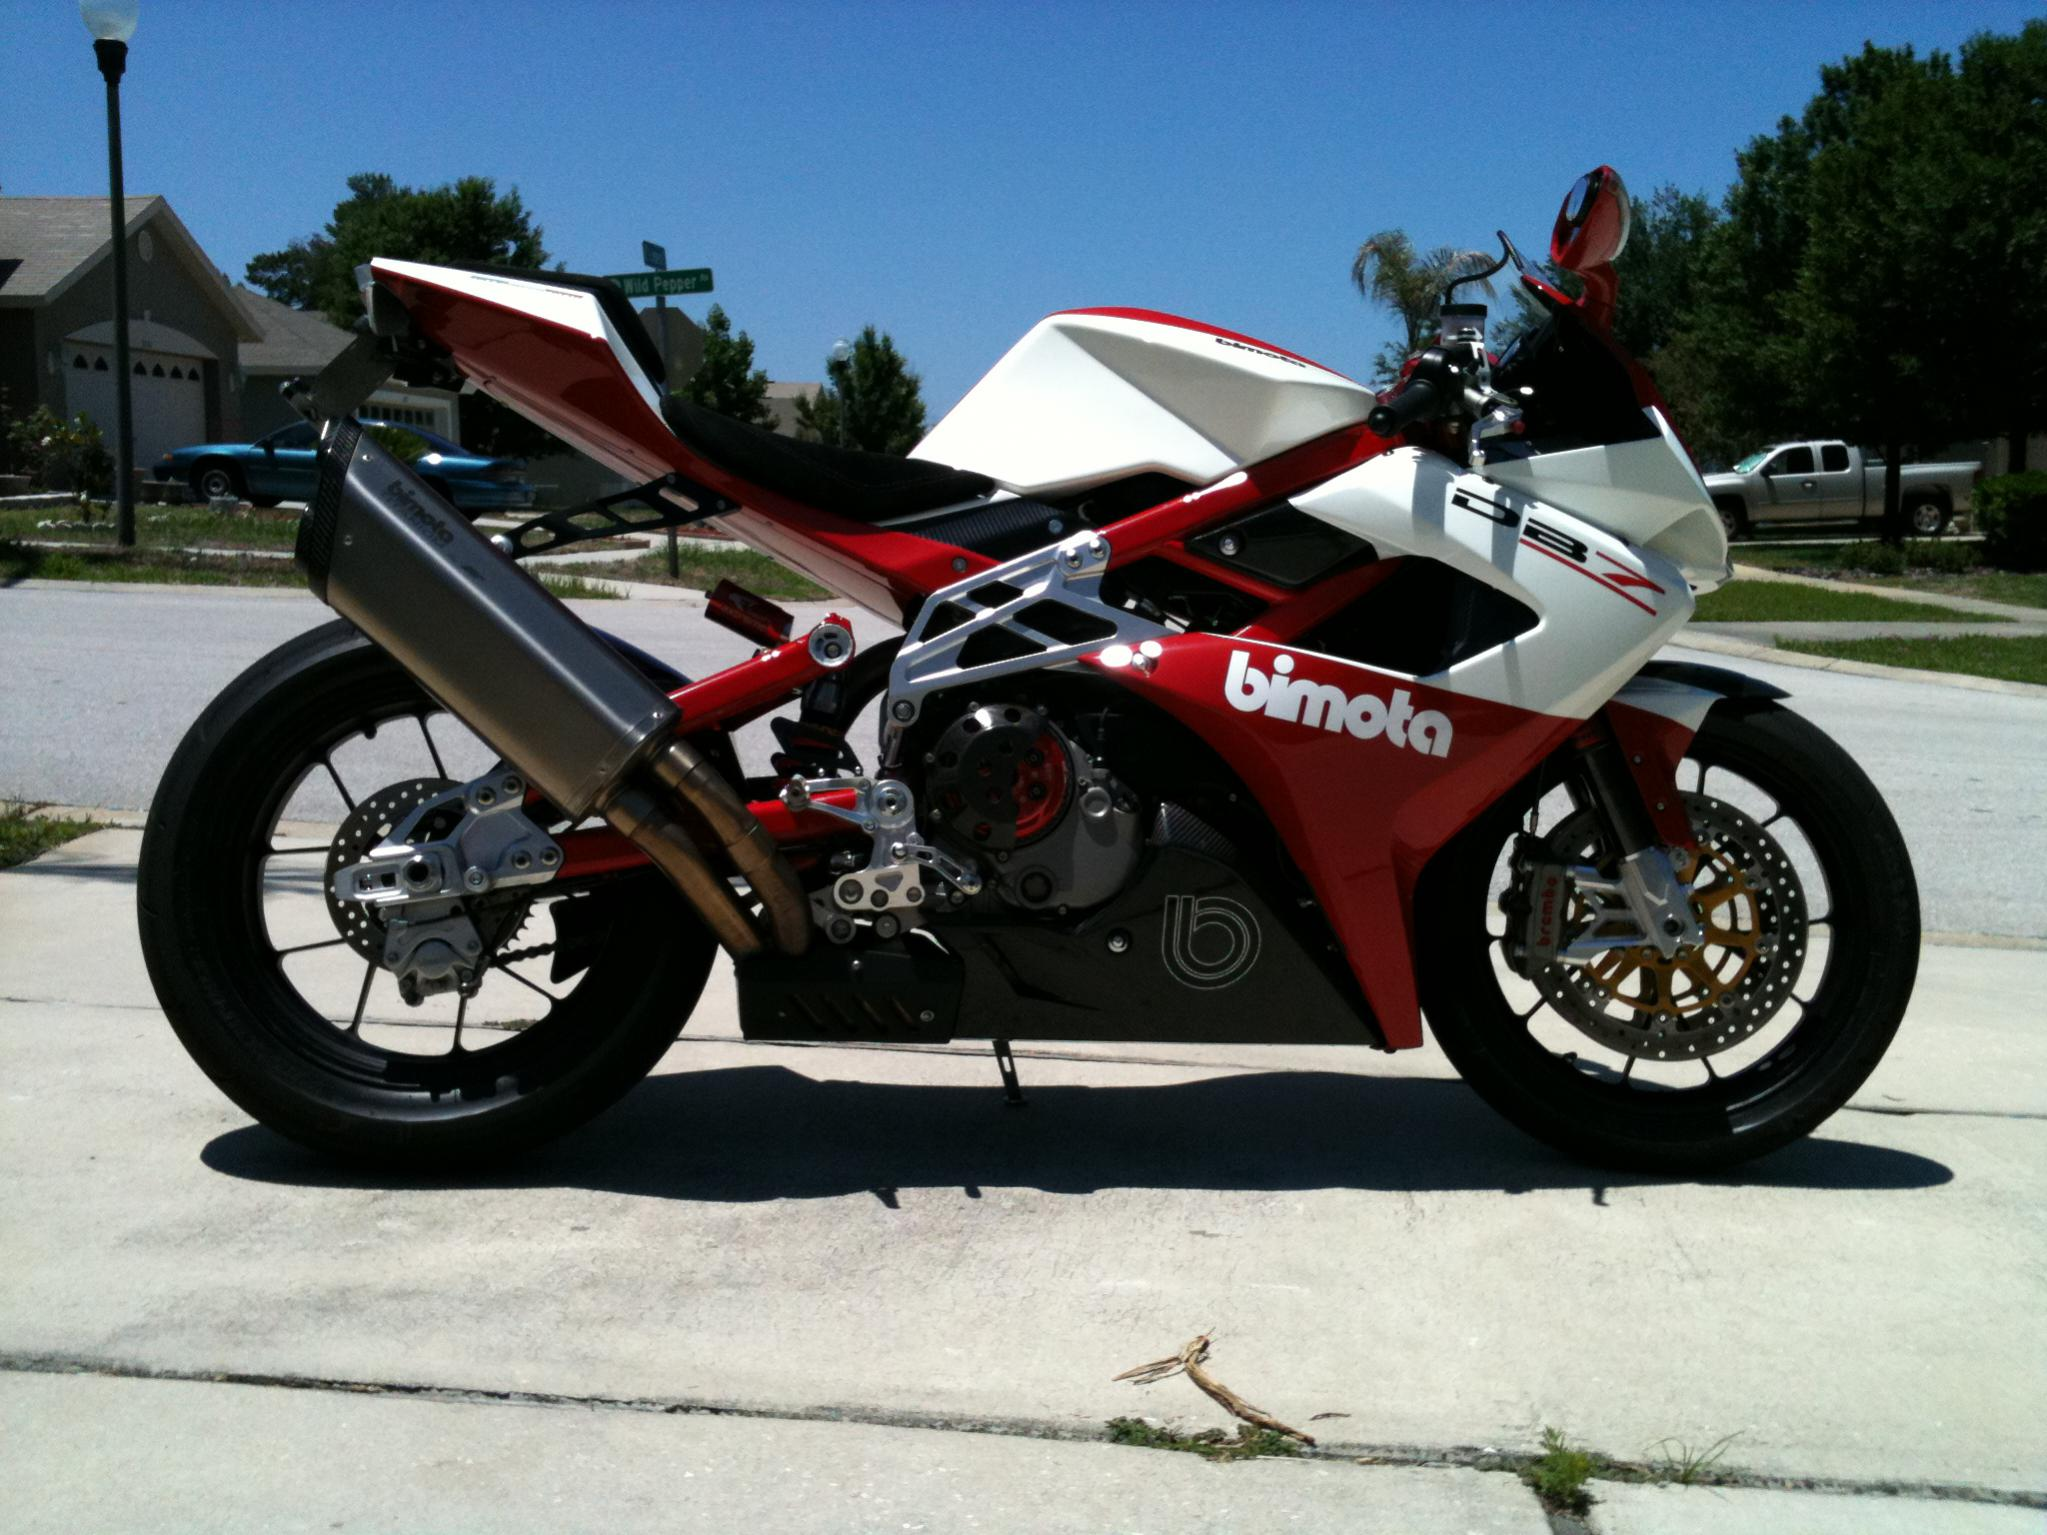 Bimota db photo - 1